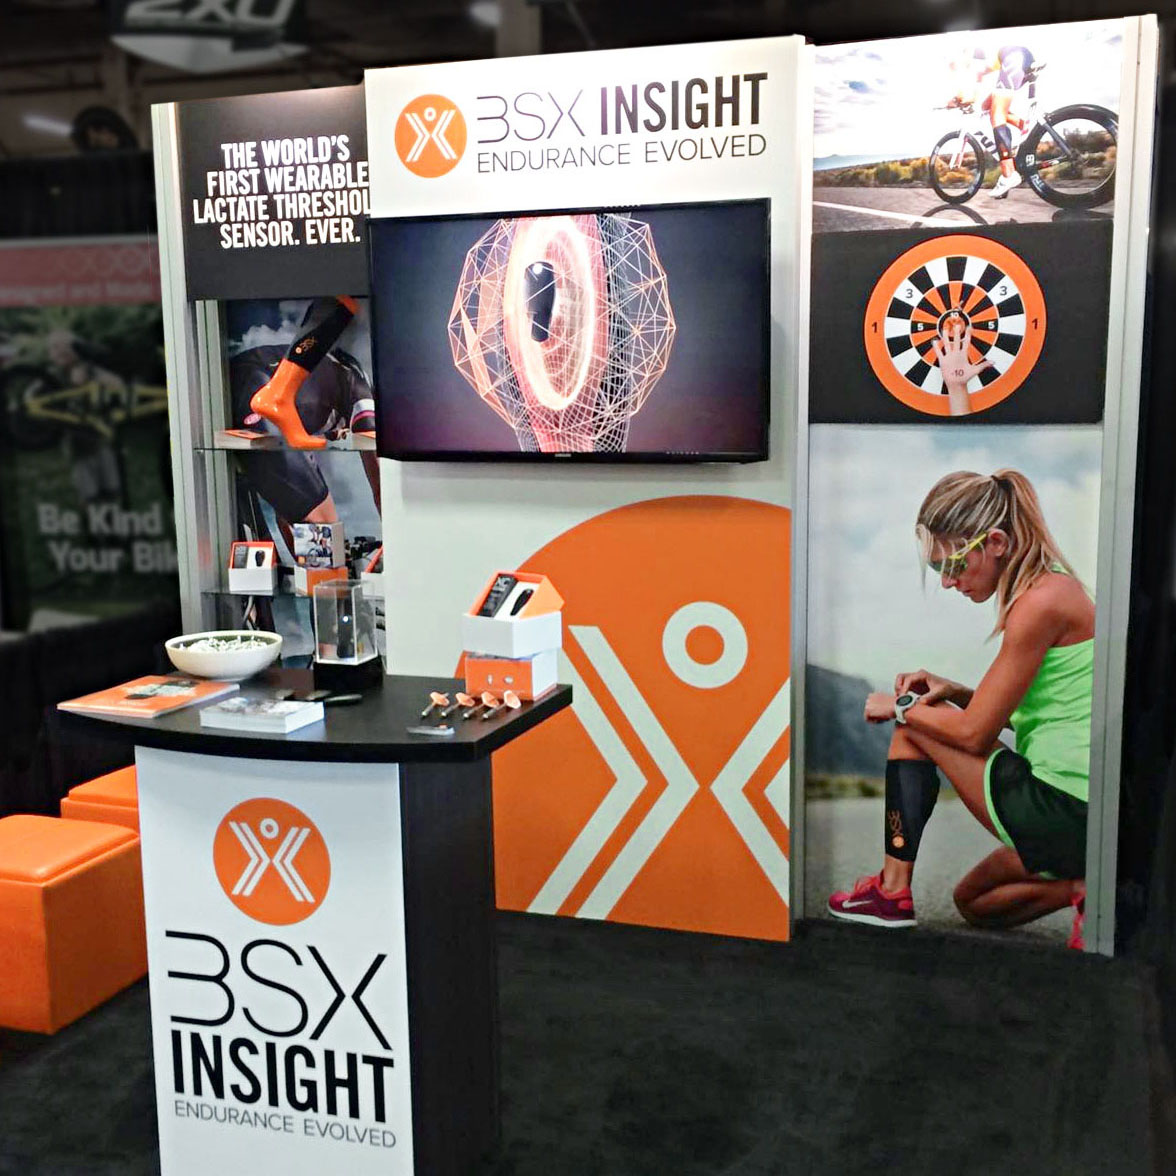 interbike show images